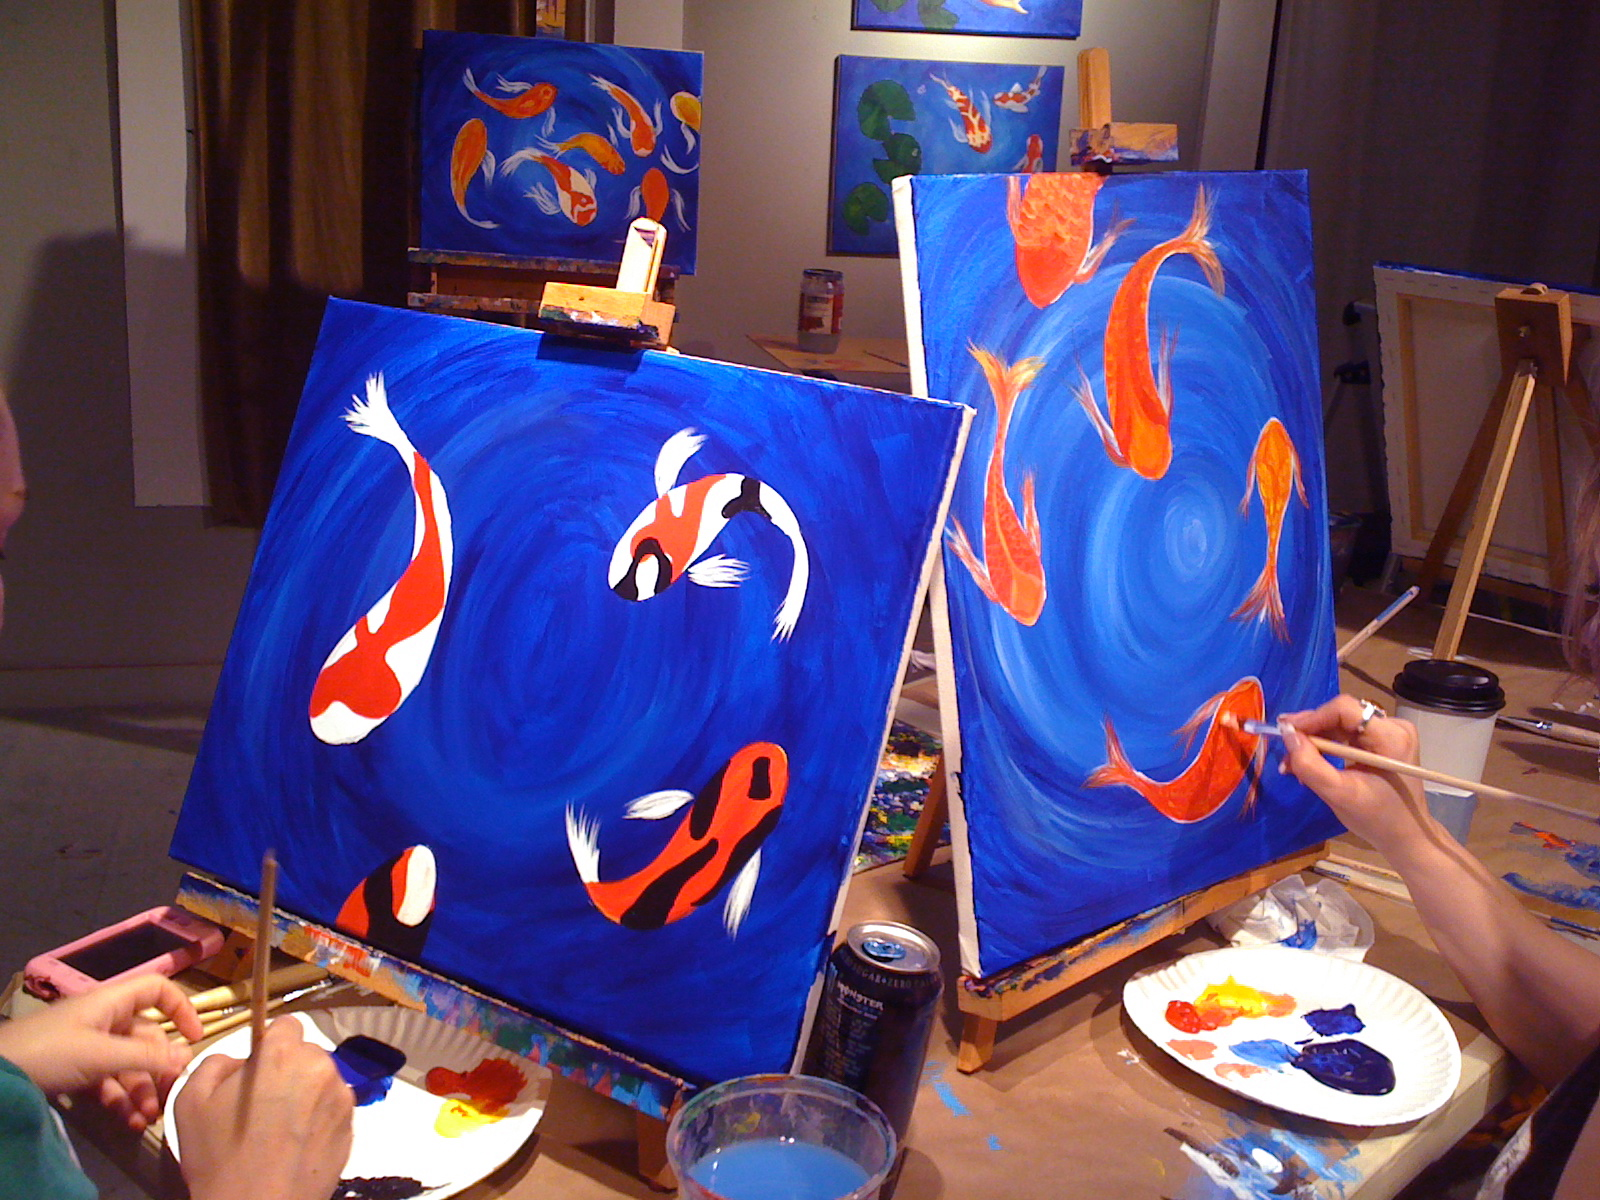 Acrylic painting workshop koi pond 3 8 registration tue for Coy pond accessories